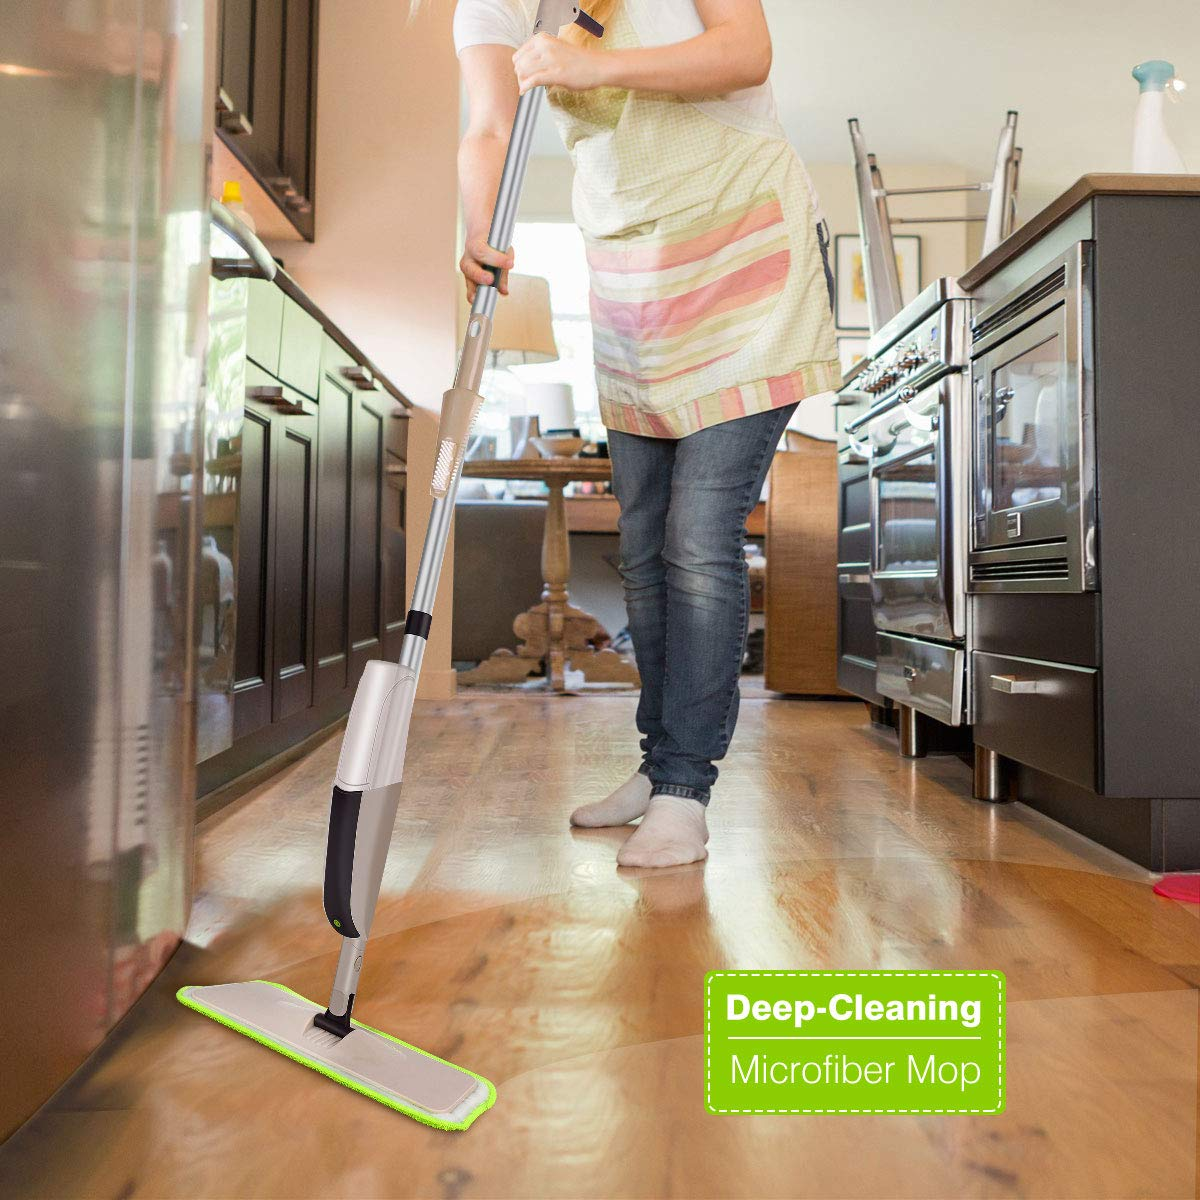 Hardwood Spray Mop for Floor Cleaning, CXhome Microfiber Mop for Tile Floors, Wet Dry Mop with Sprayer and 2 Mop Pads, 1 Refillable Bottle by CXhome (Image #7)